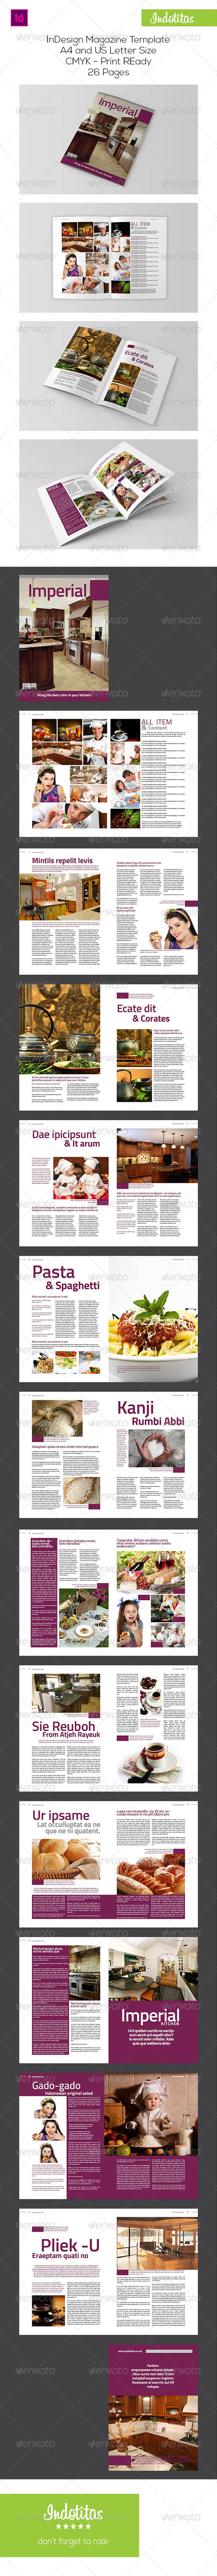 Kitchen InDesign Magazine Template - Magazines Print Templates